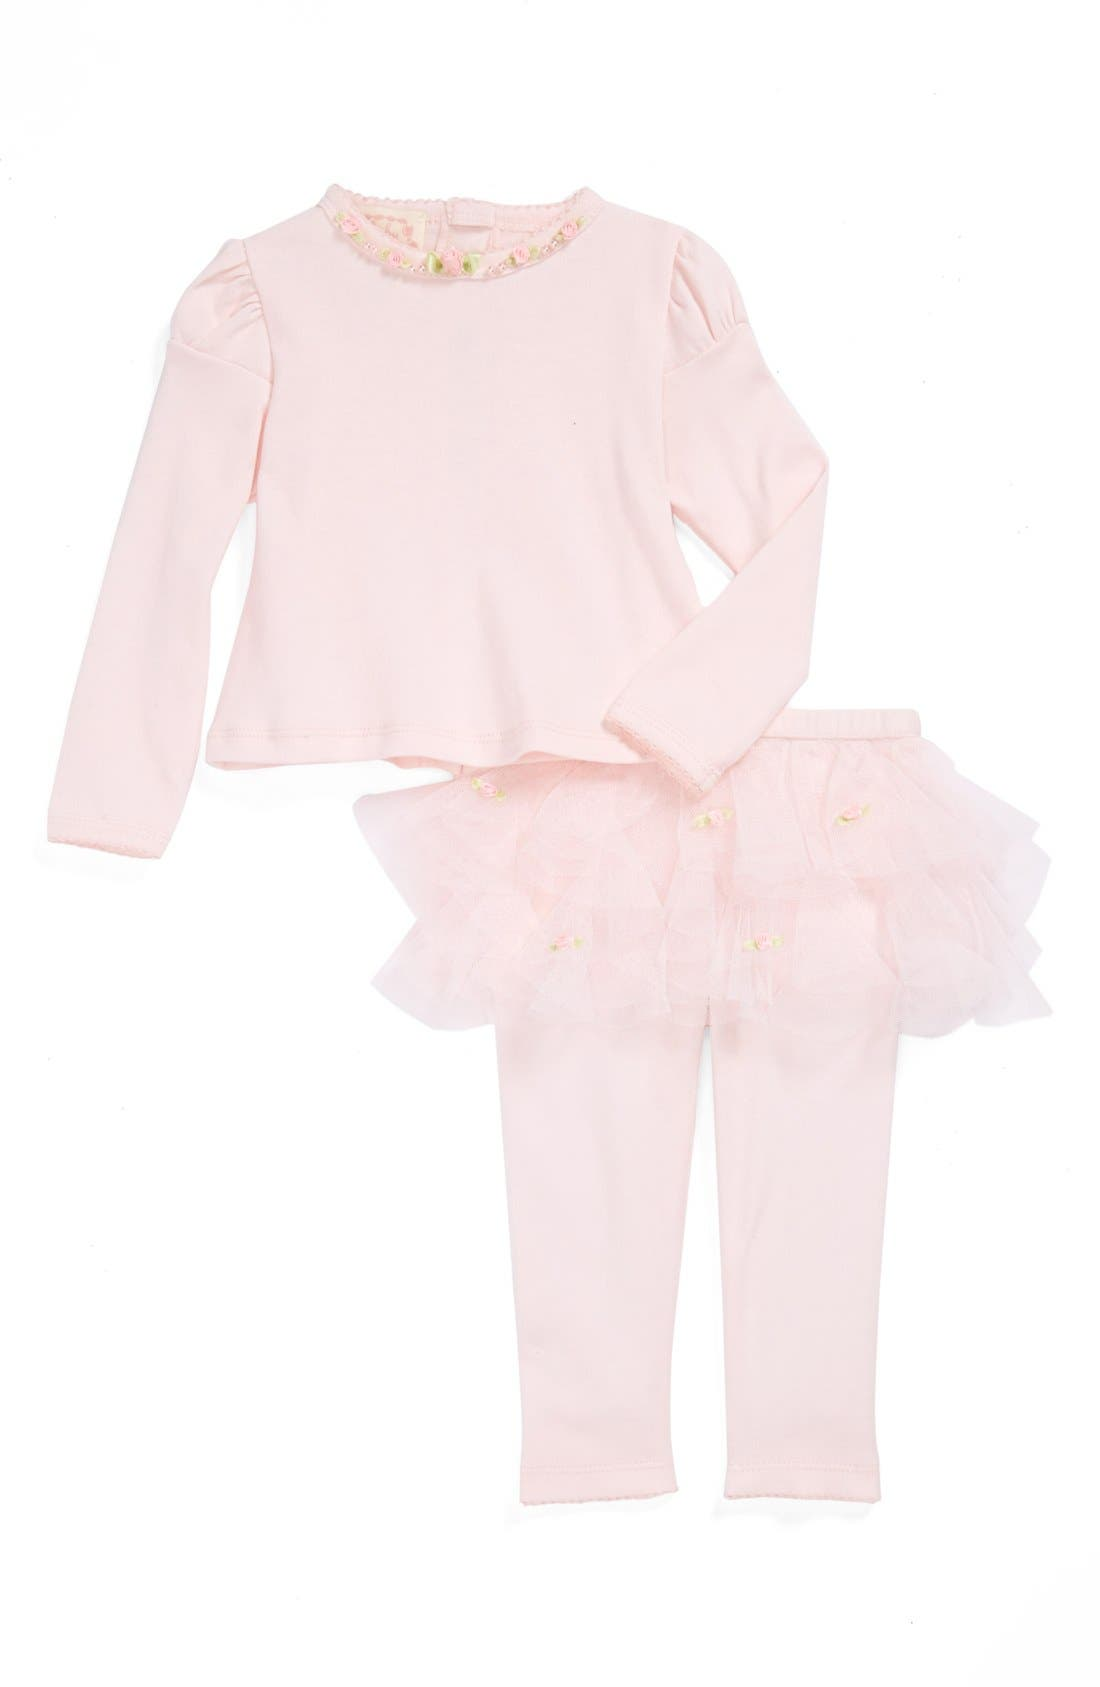 Main Image - Biscotti Top and Pants (Baby Girls)